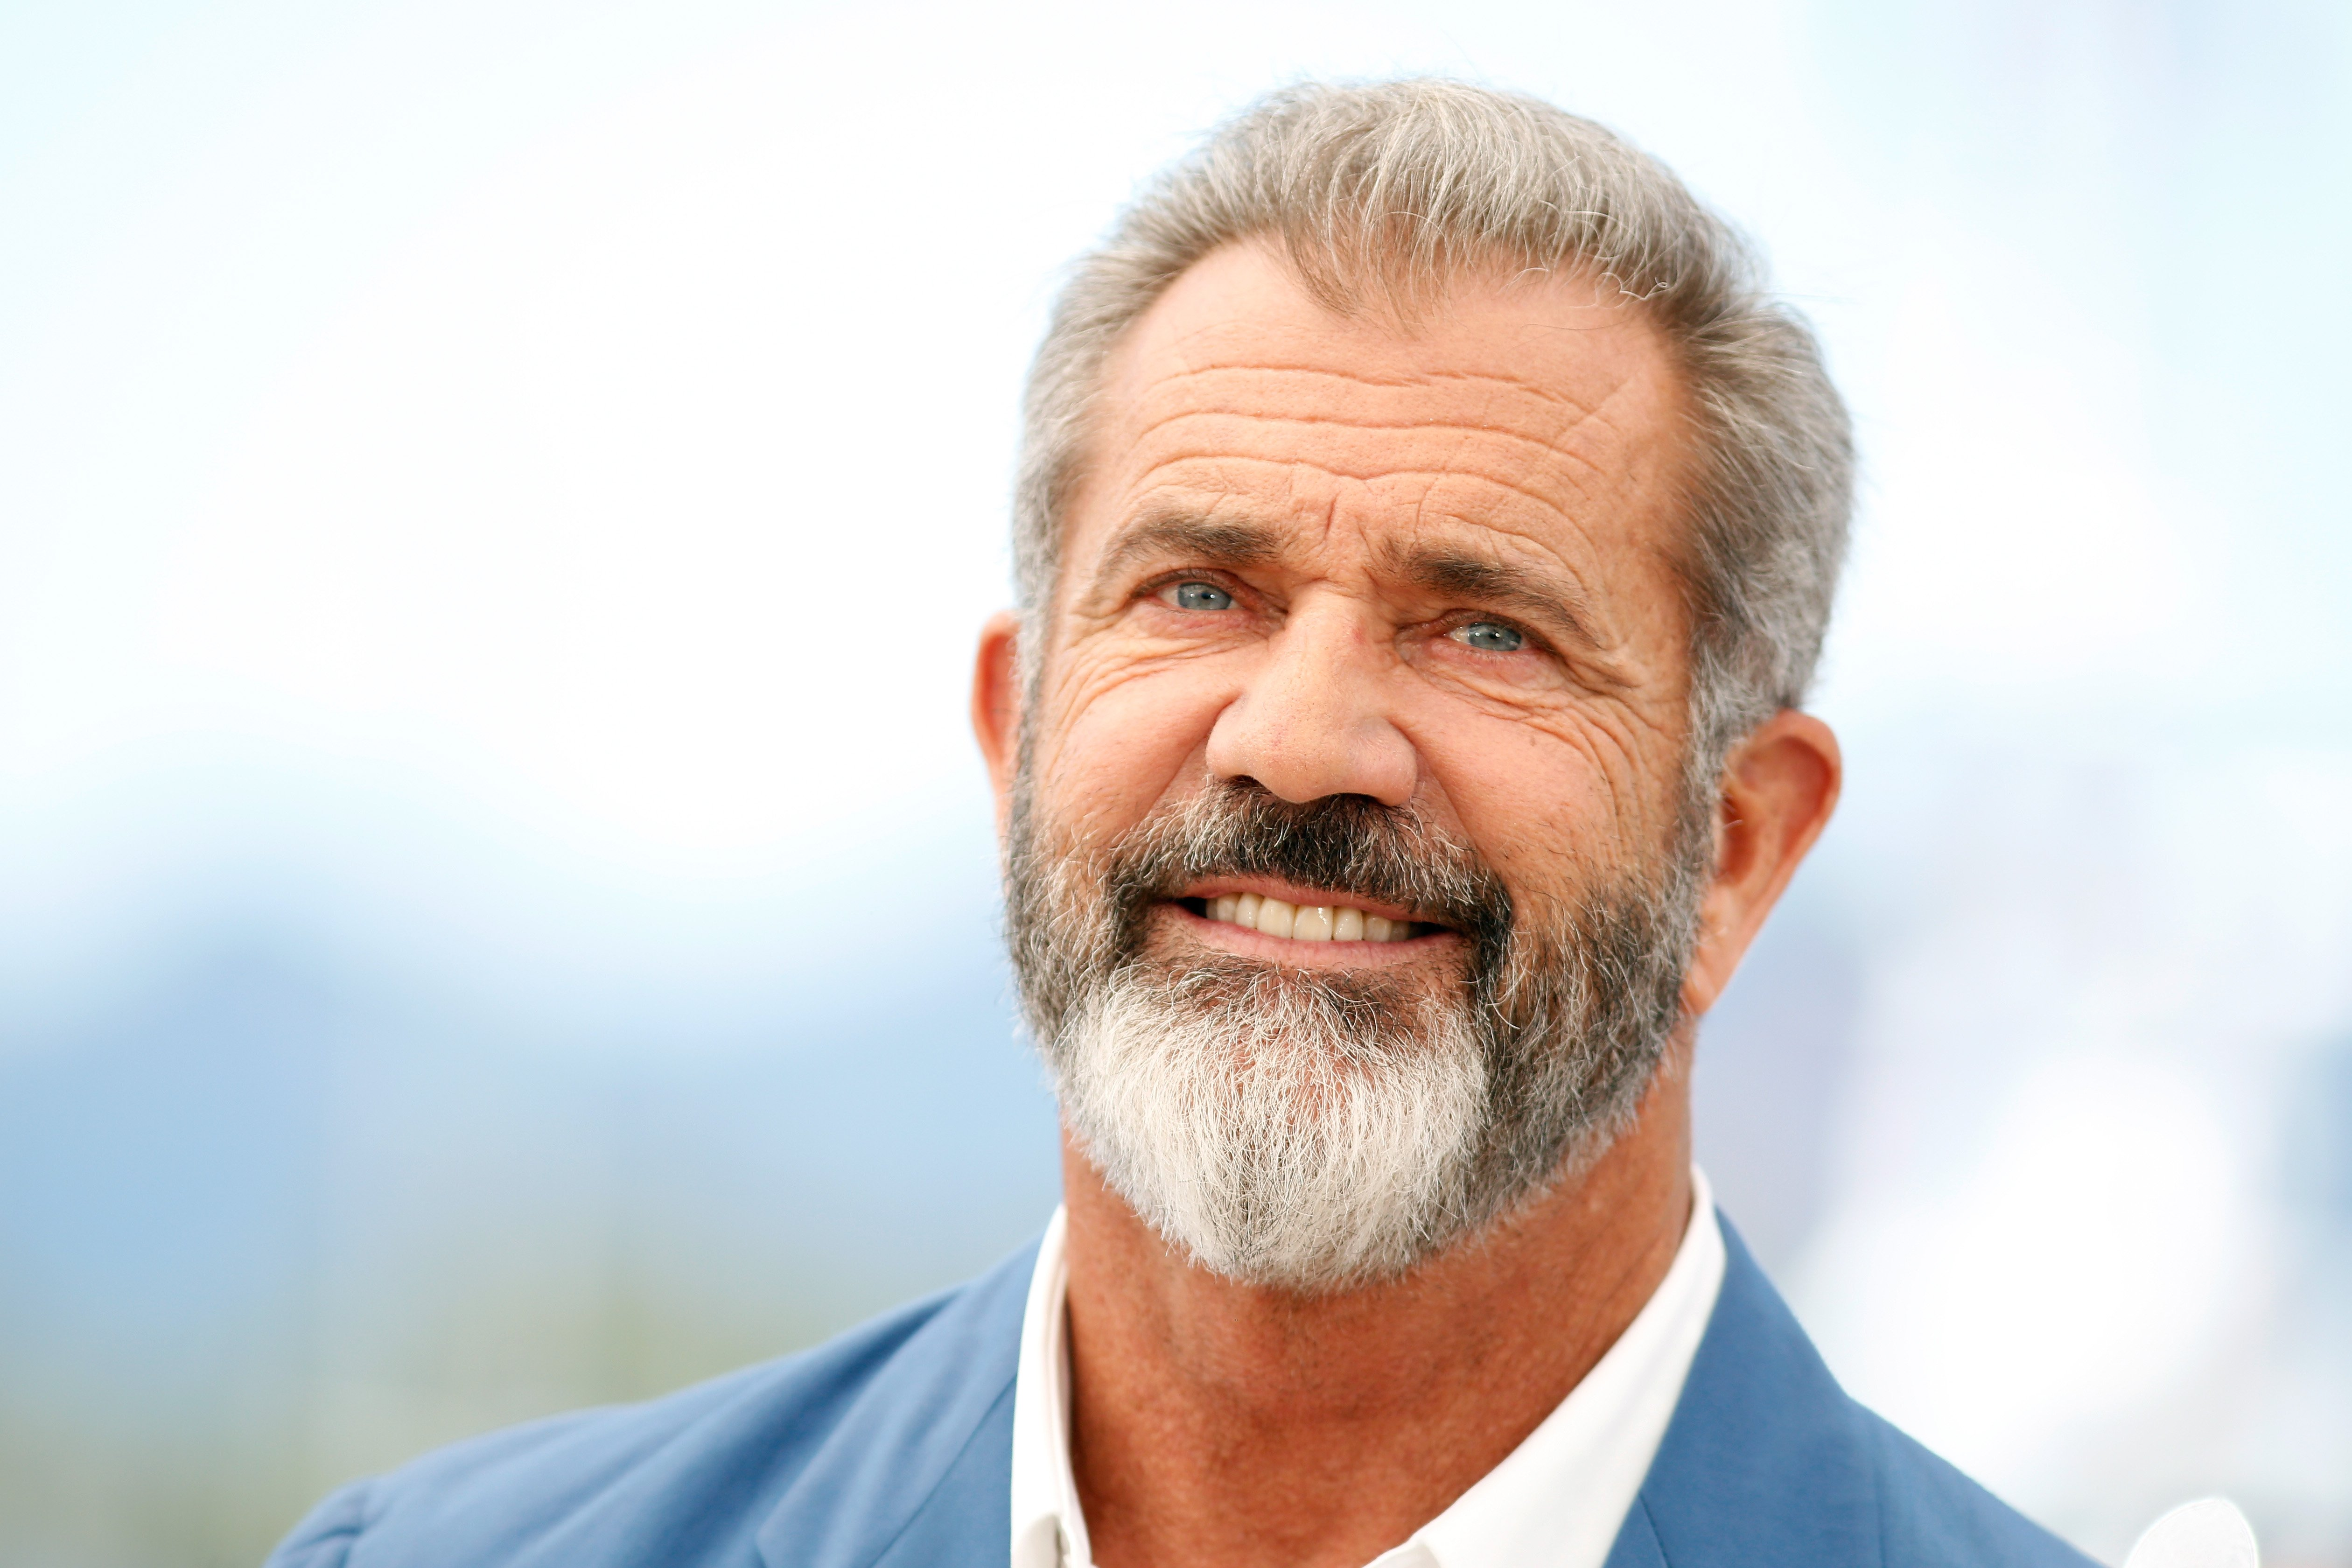 Image Source: Getty Images/Picture of Mel Gibson